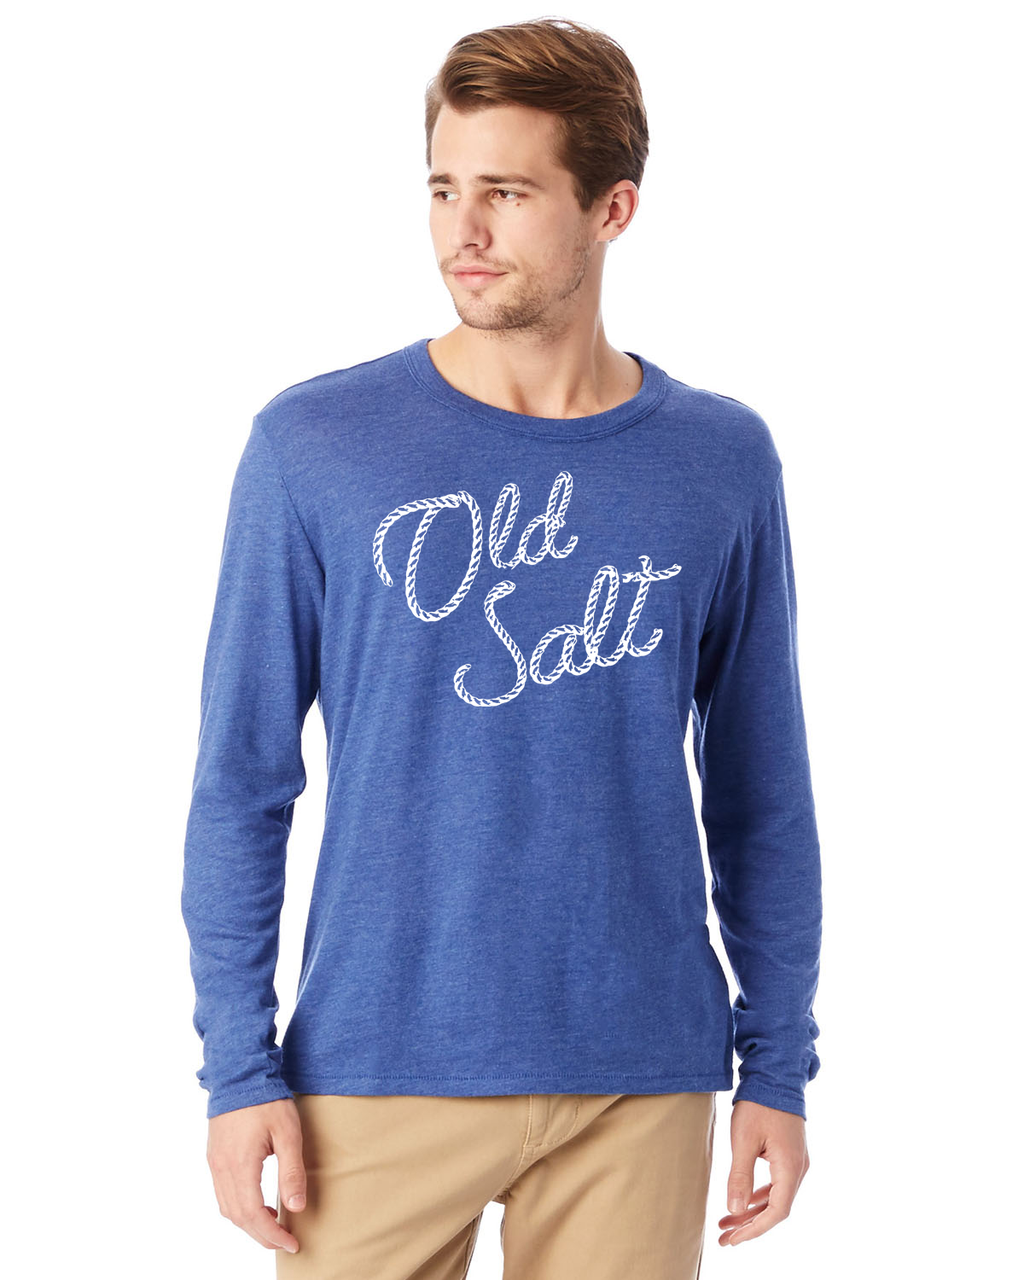 Old Salt Unisex Long Sleeve Shirt - Slack Tide Sea Salt